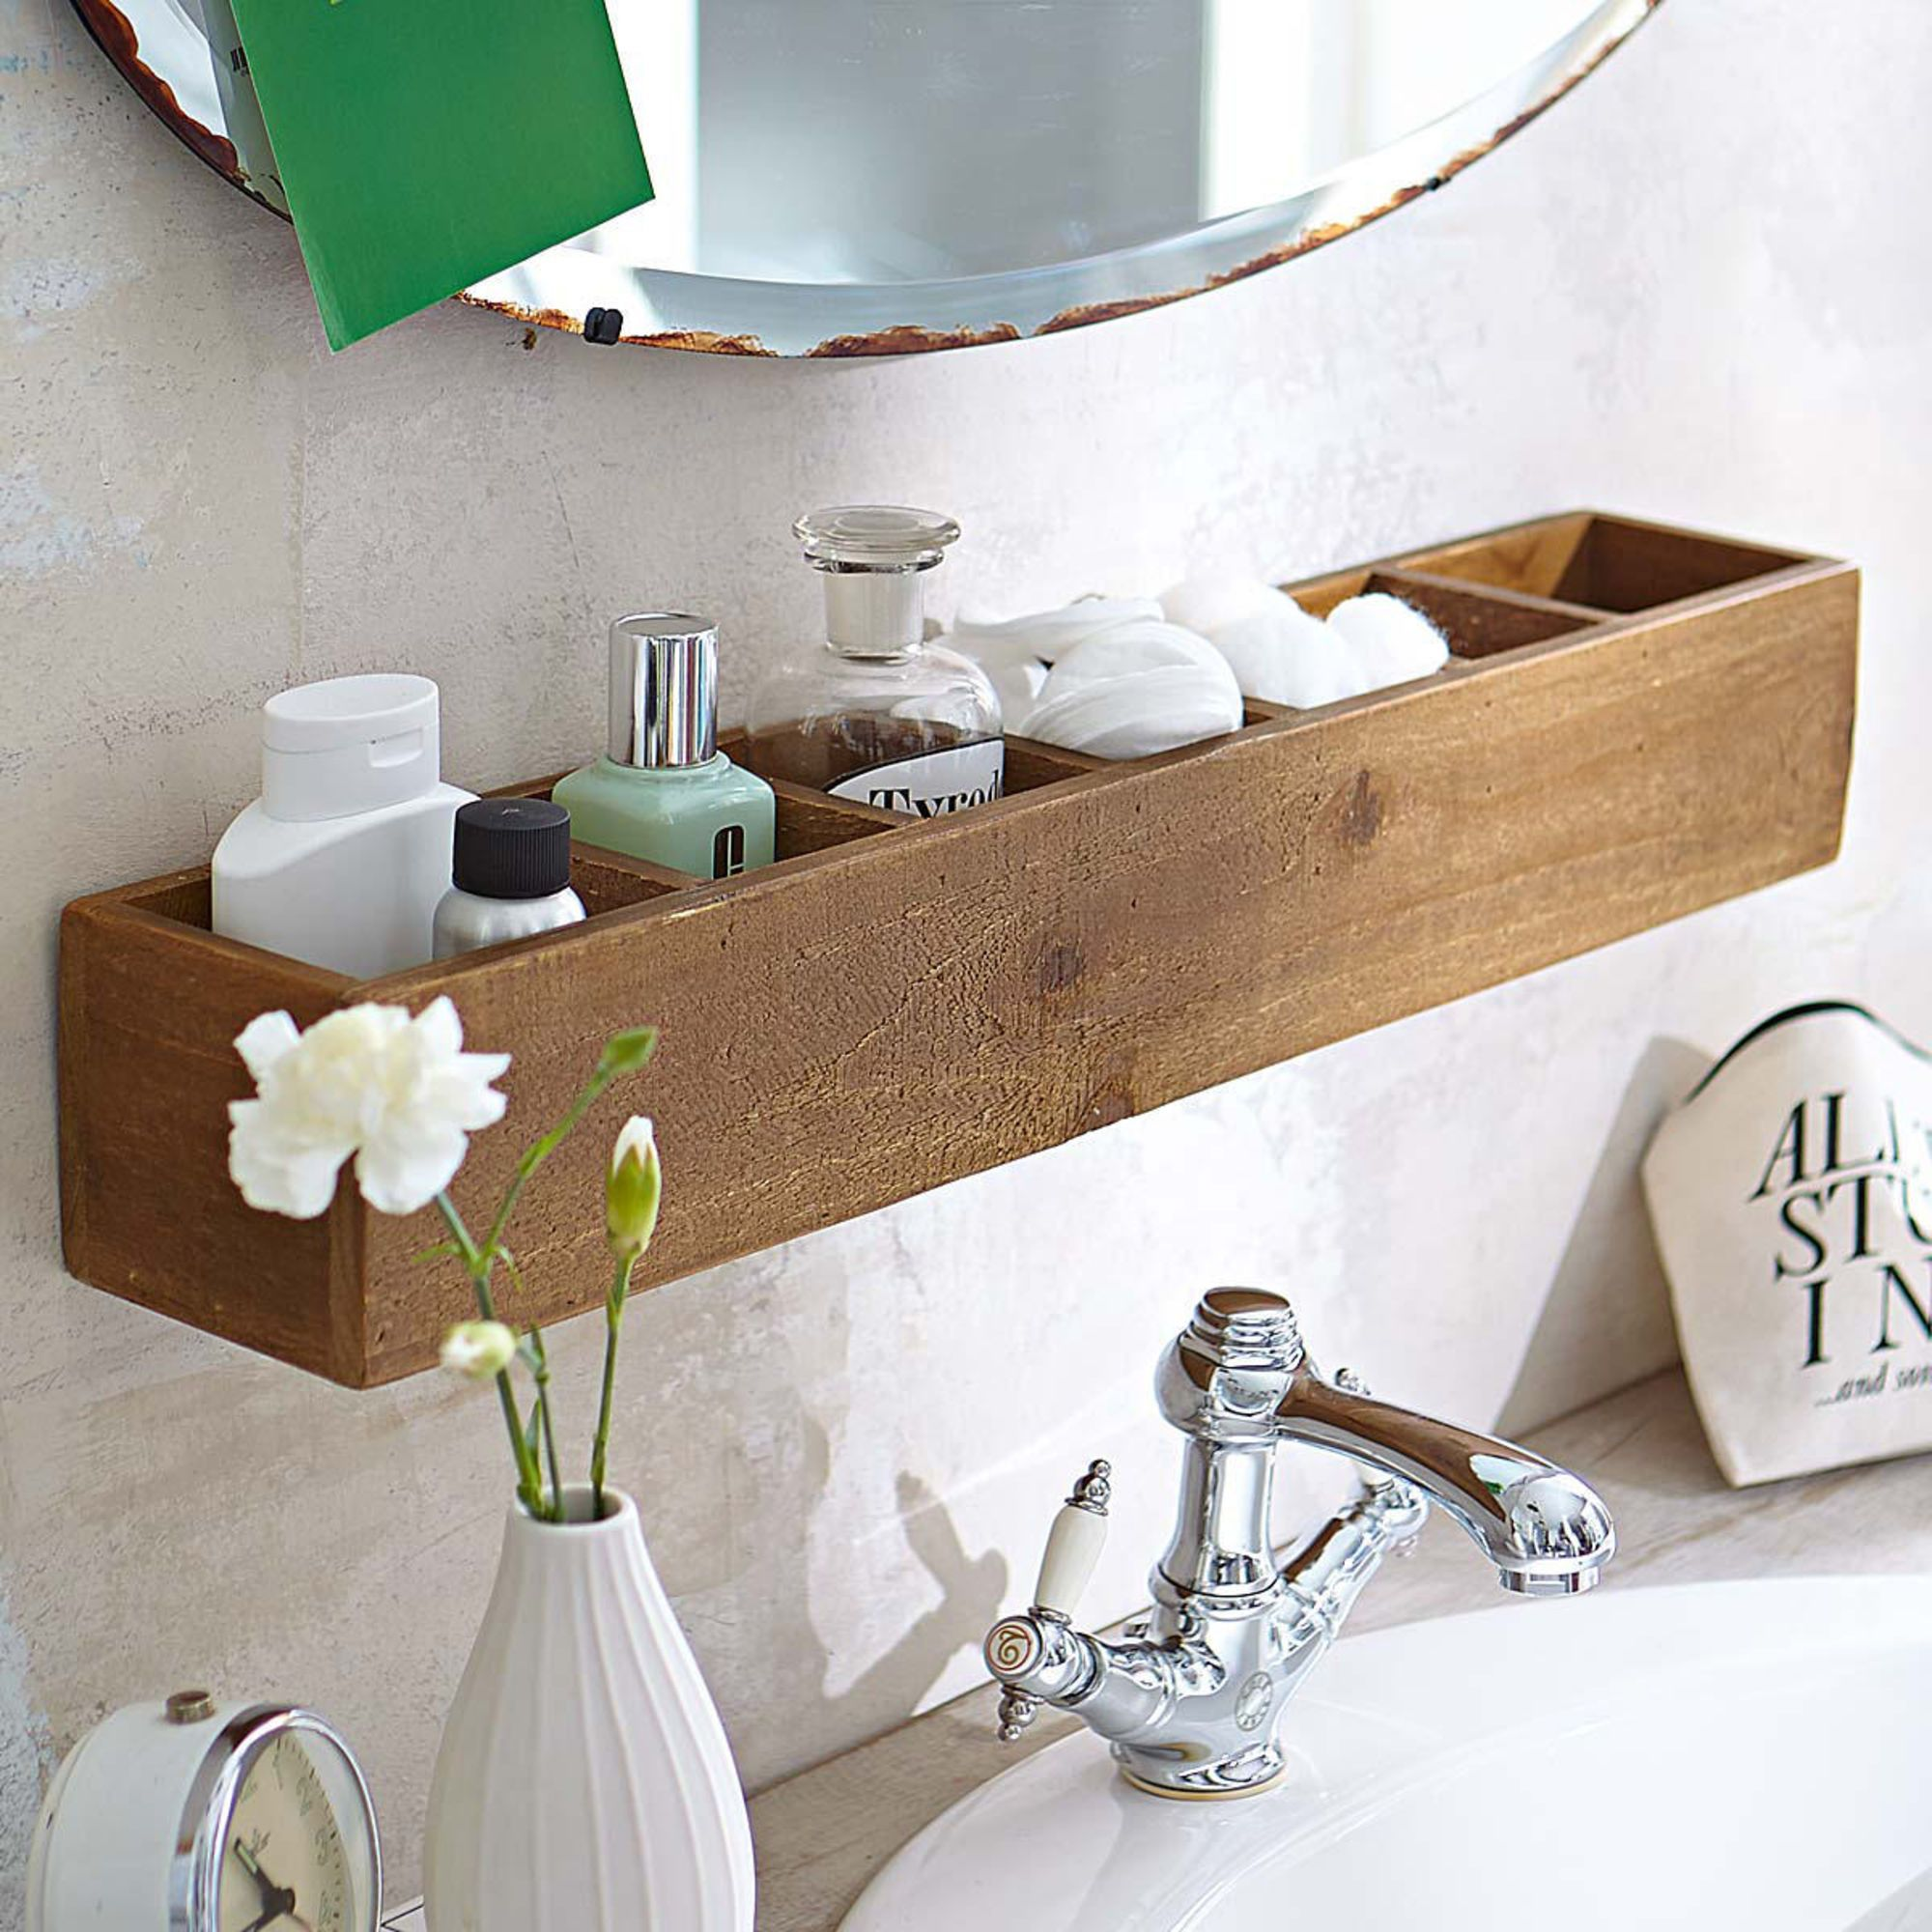 Bathroom Organization Ideas Small - Nicheh